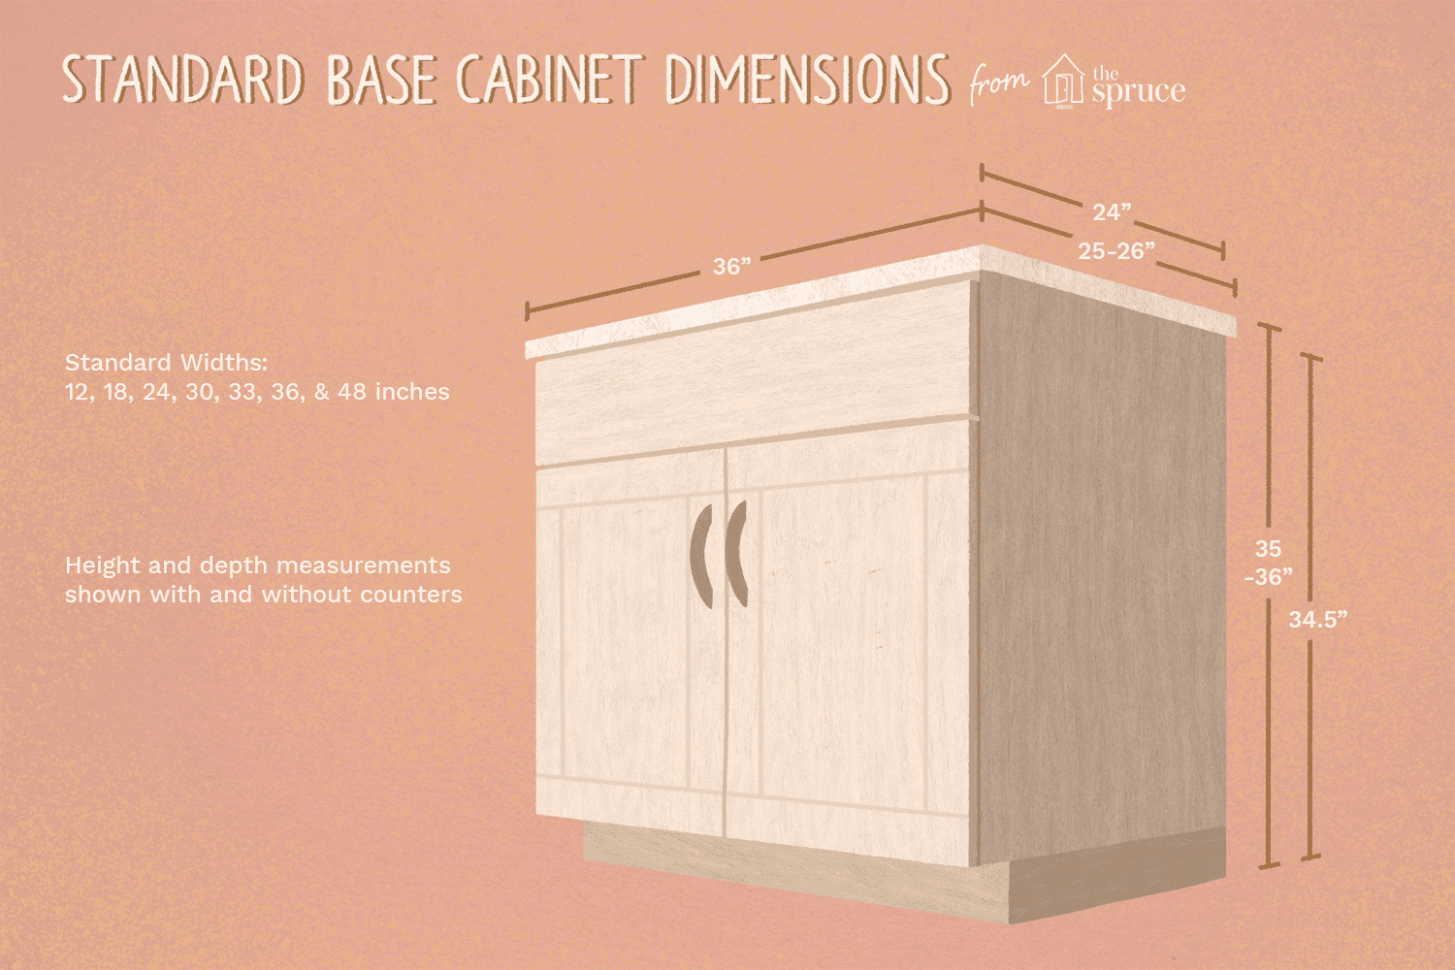 Guide to Standard Kitchen Cabinet Dimensions - Kitchen Wall Cabinets Measurements